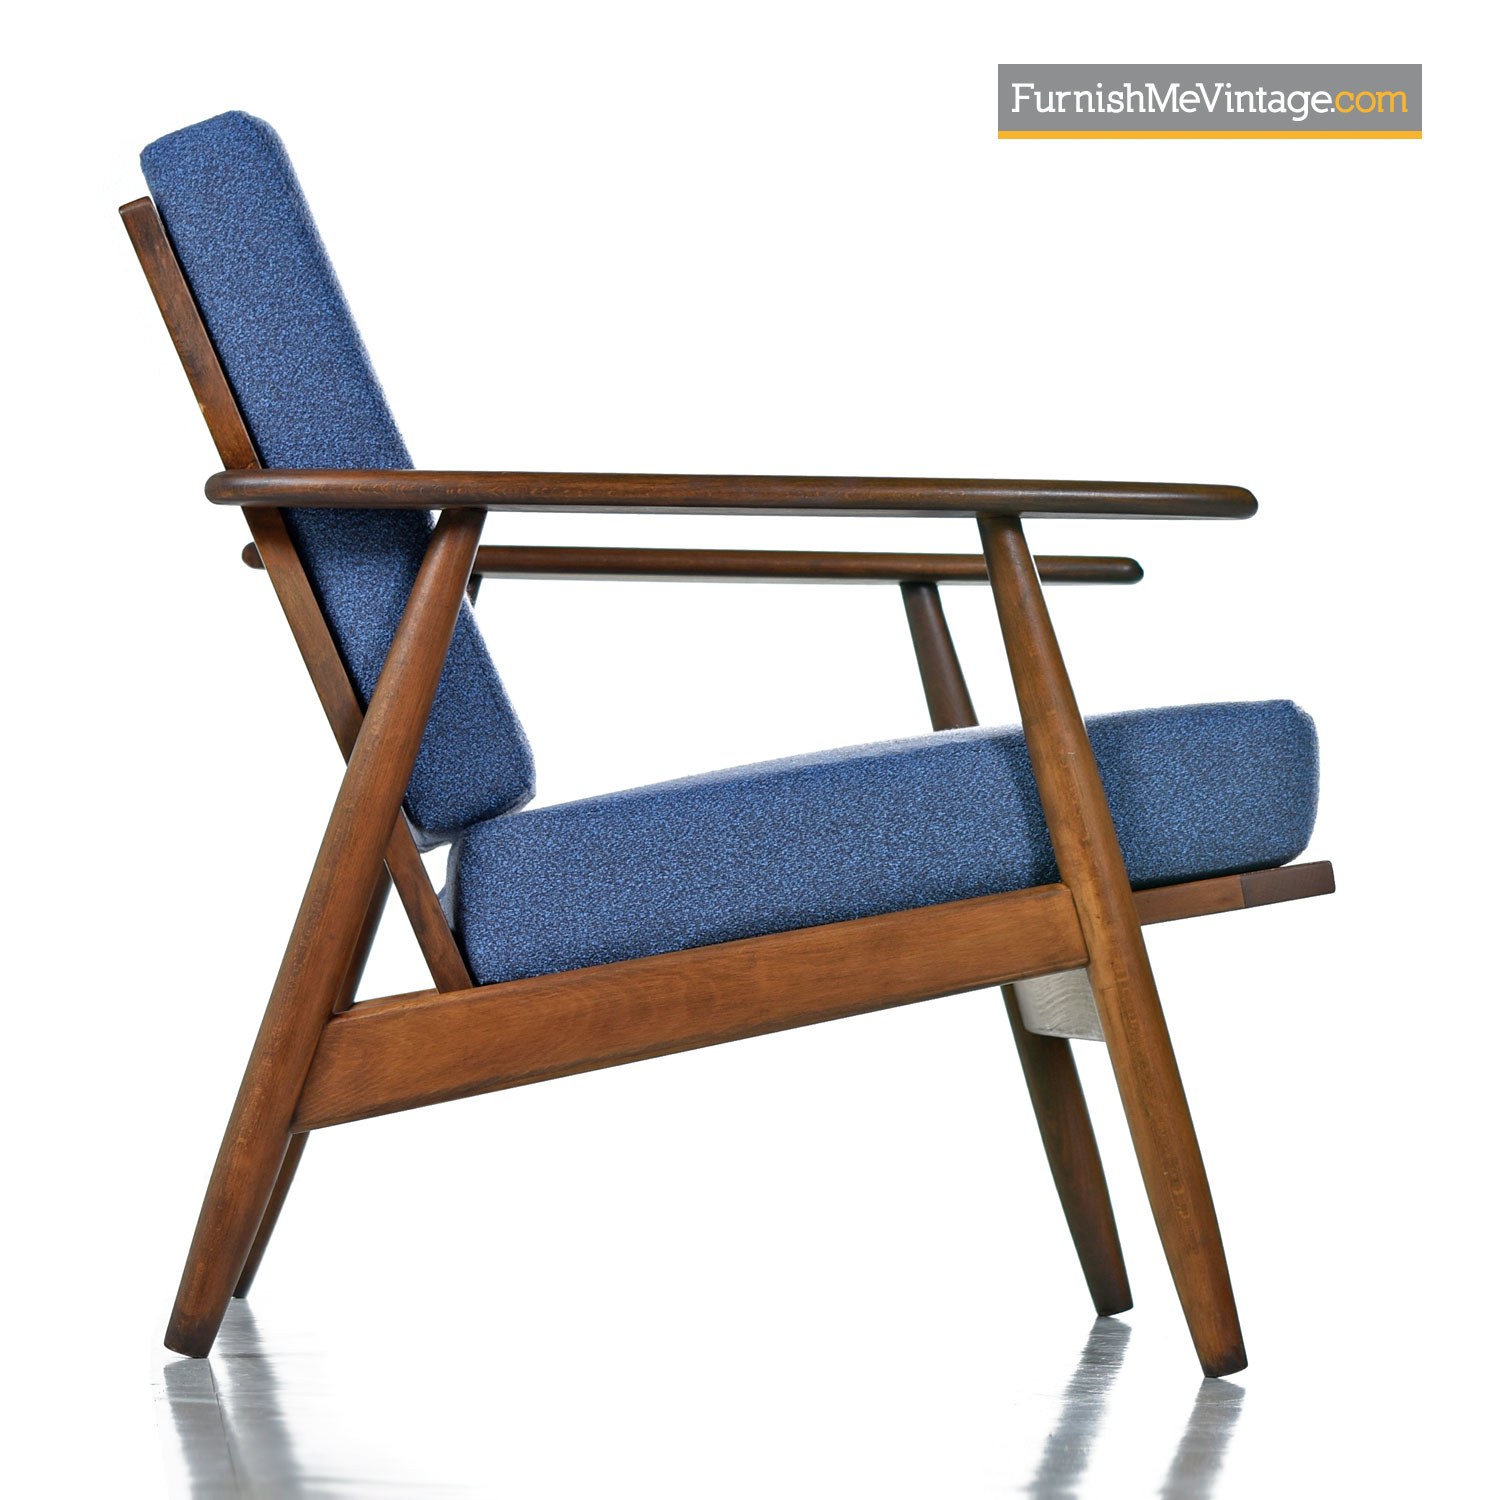 Restored Mid Century Modern Wood Frame Arm Chairs In Blue